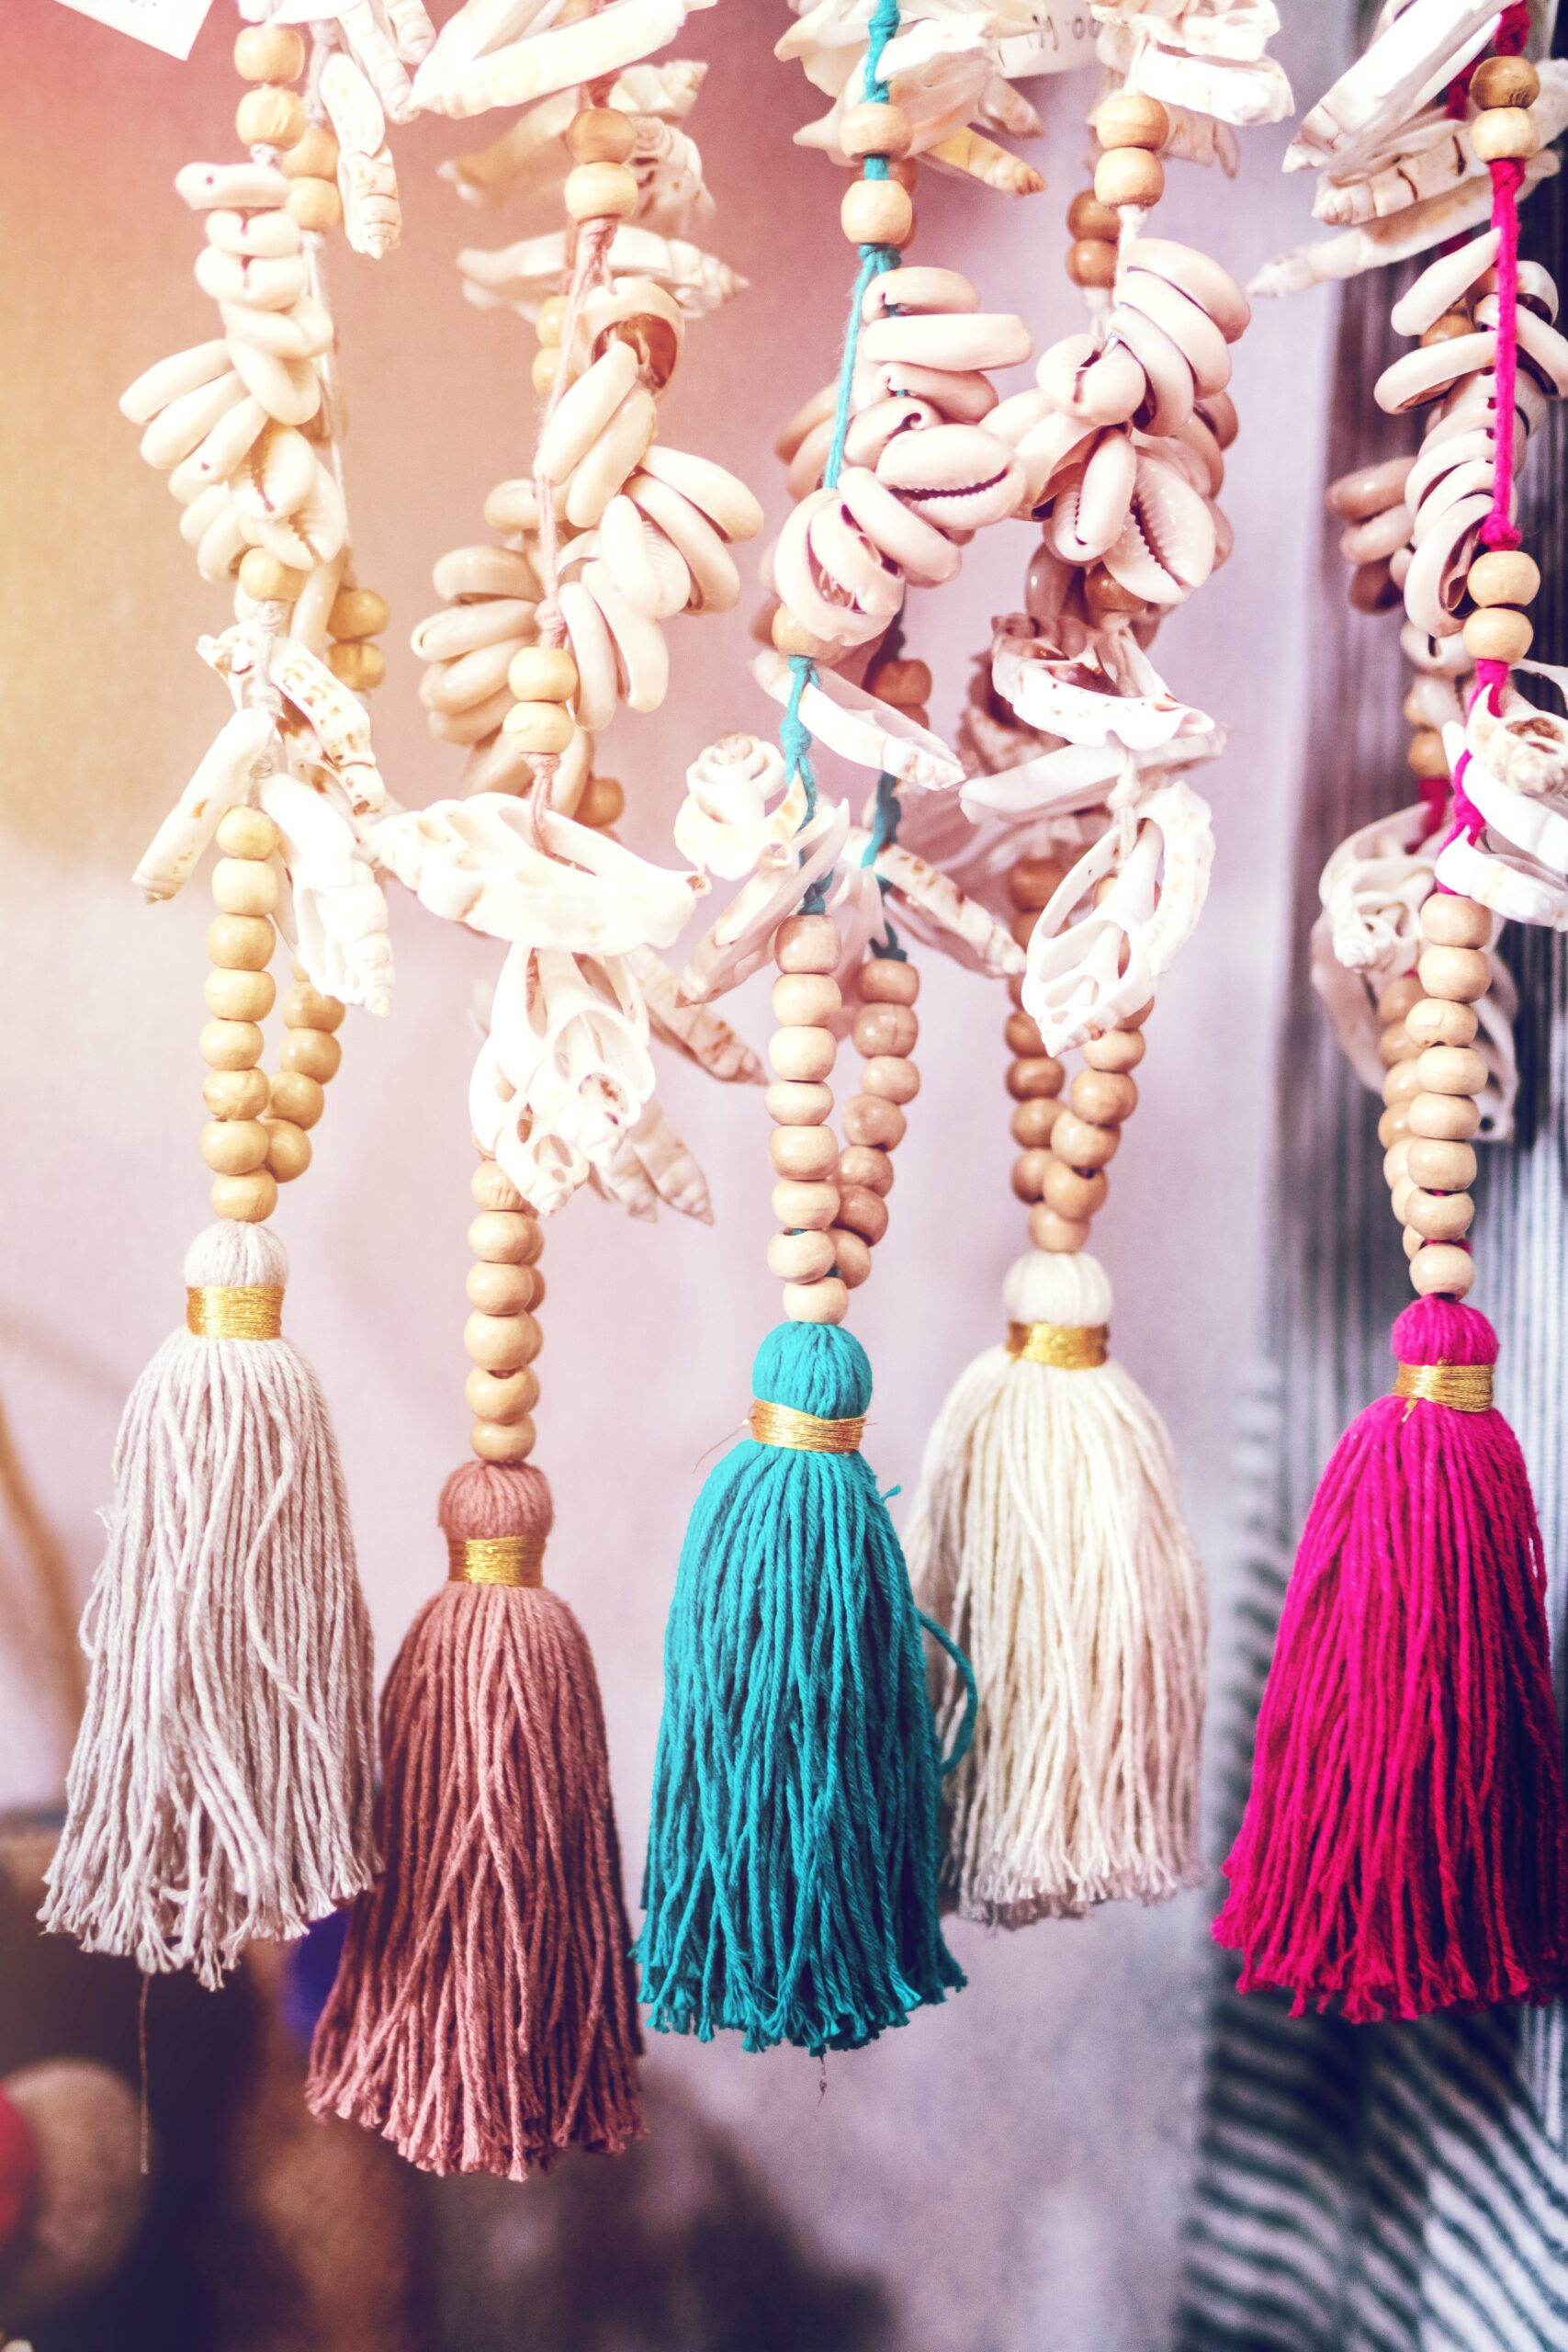 Laundry cleaning tassels are complicated- but more fun than it looks!